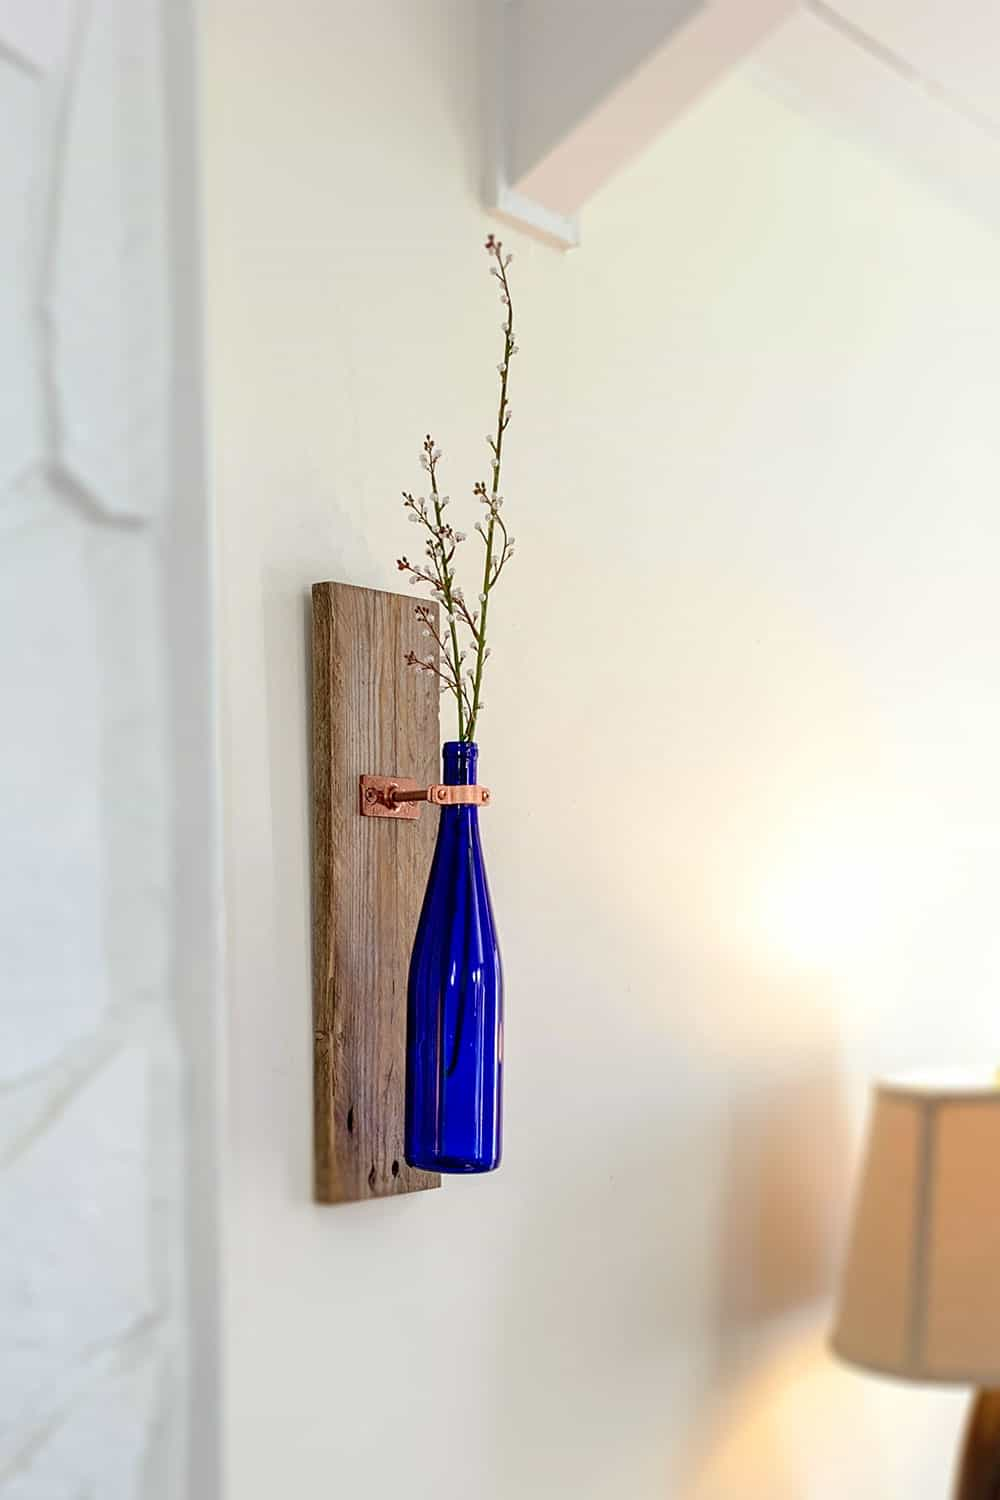 wine bottle on wall with flowers